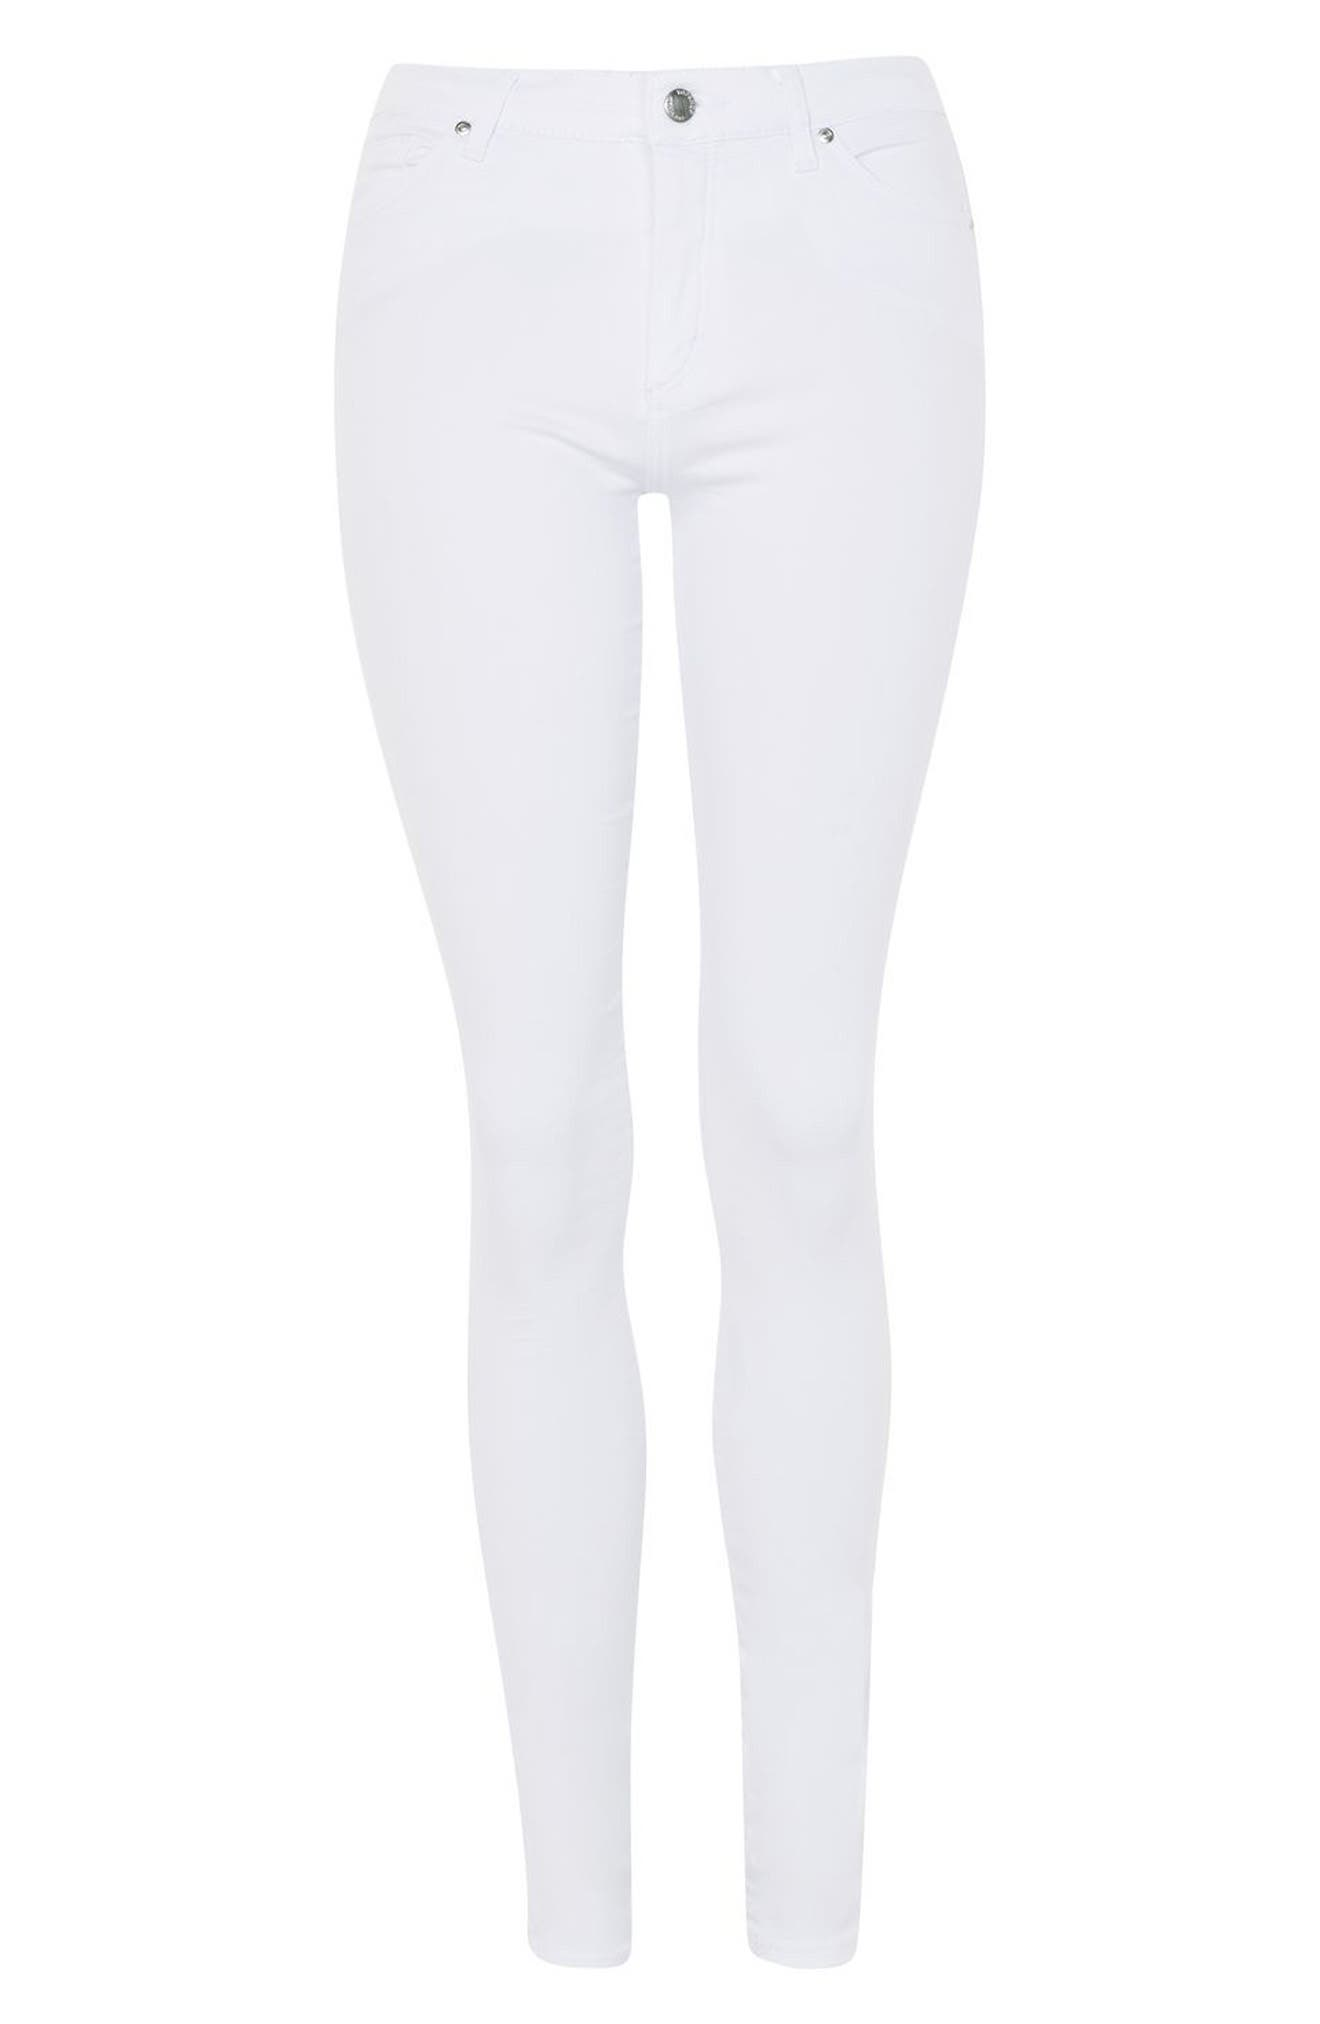 Leigh Skinny Jeans,                             Alternate thumbnail 4, color,                             100